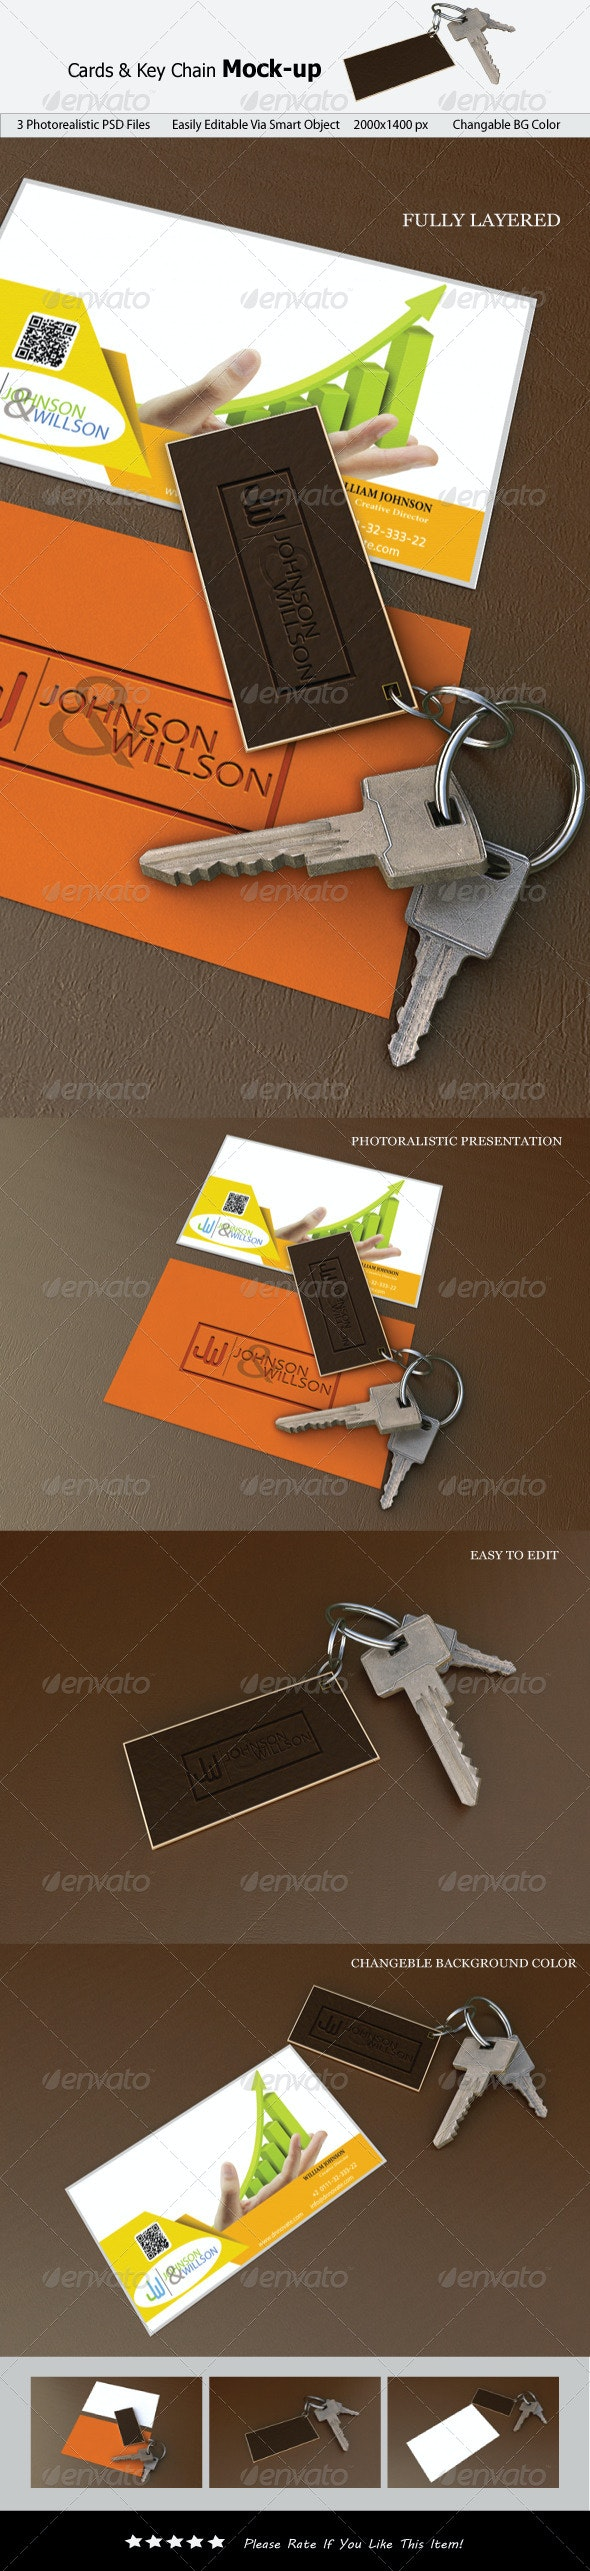 Cards & Key Chain Mock-up - Product Mock-Ups Graphics